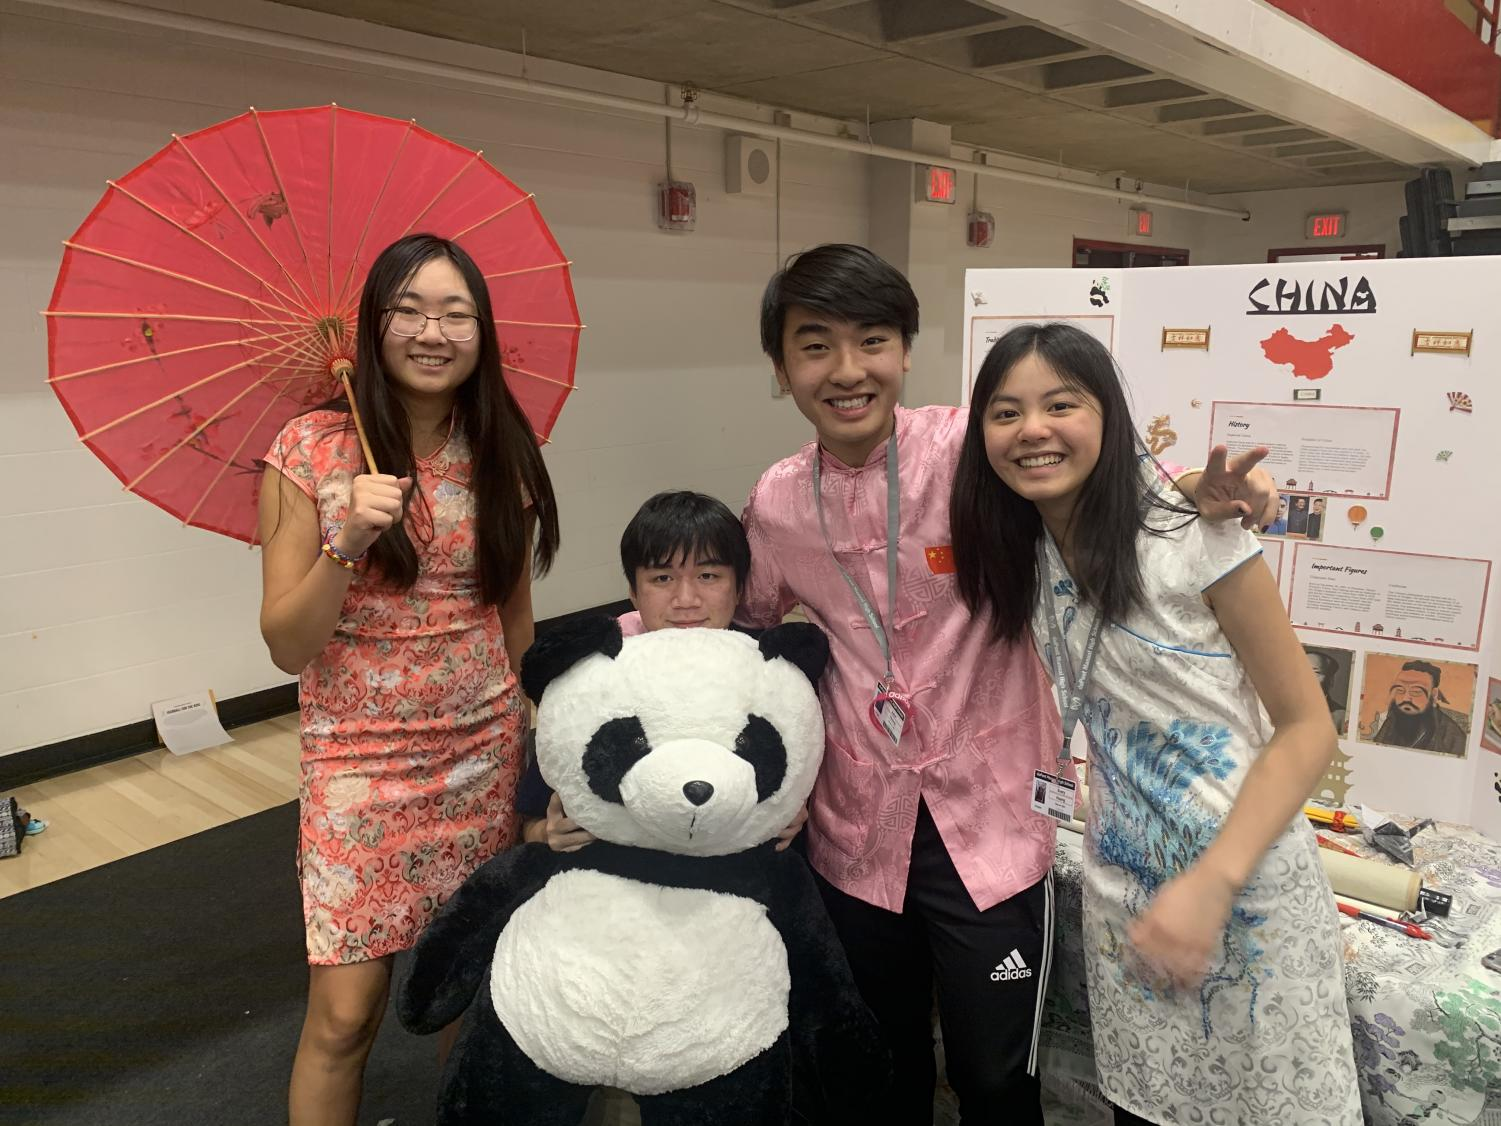 Students pose at the China booth at the multicultural fair. Photo by Macy Waddle